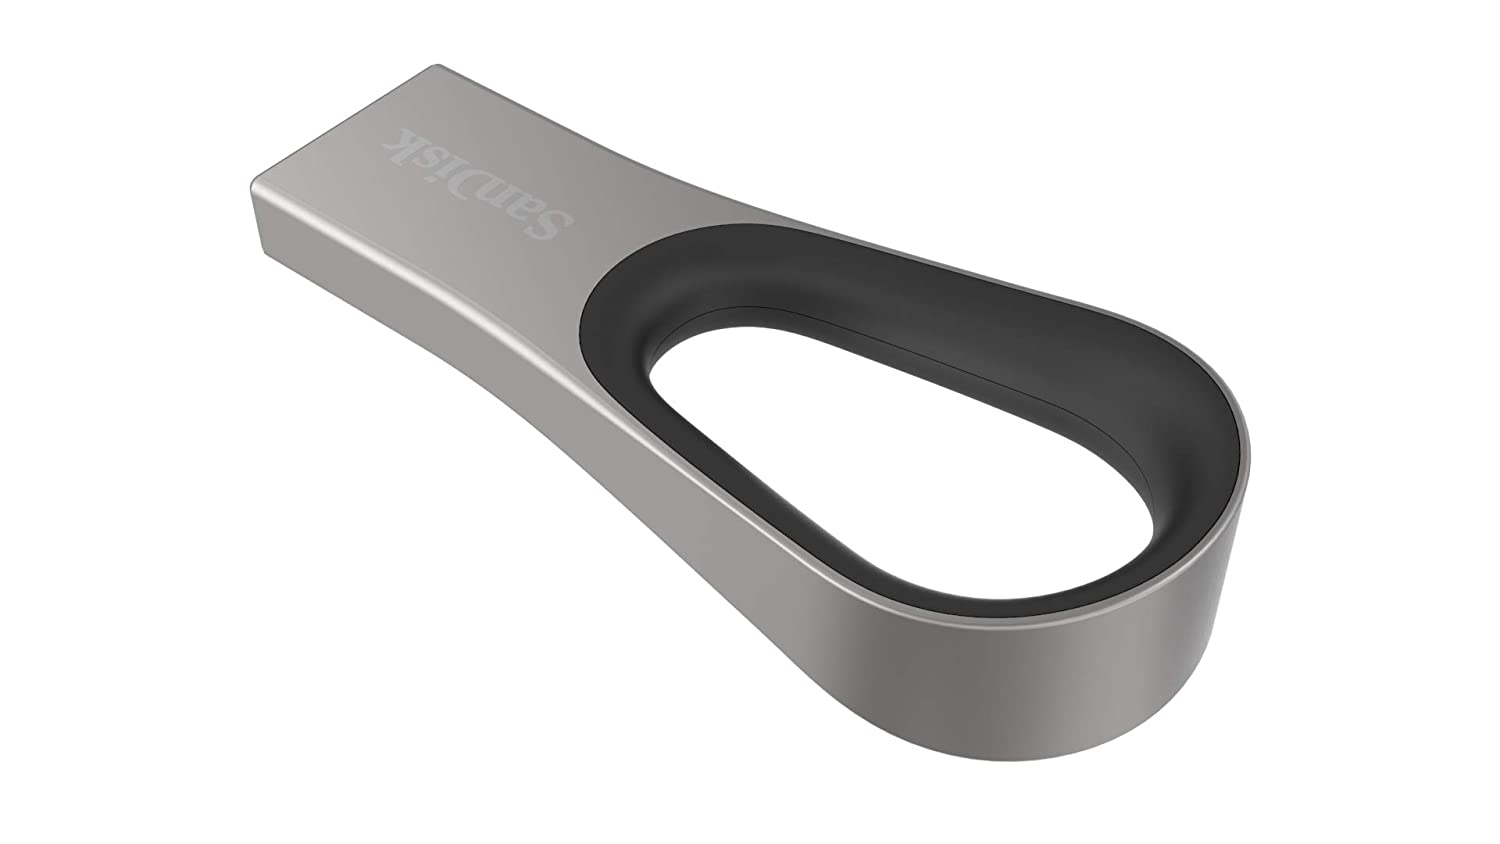 SanDisk 64GB Ultra Loop USB 3.0 Flash Drive - SDCZ93-064G-G46